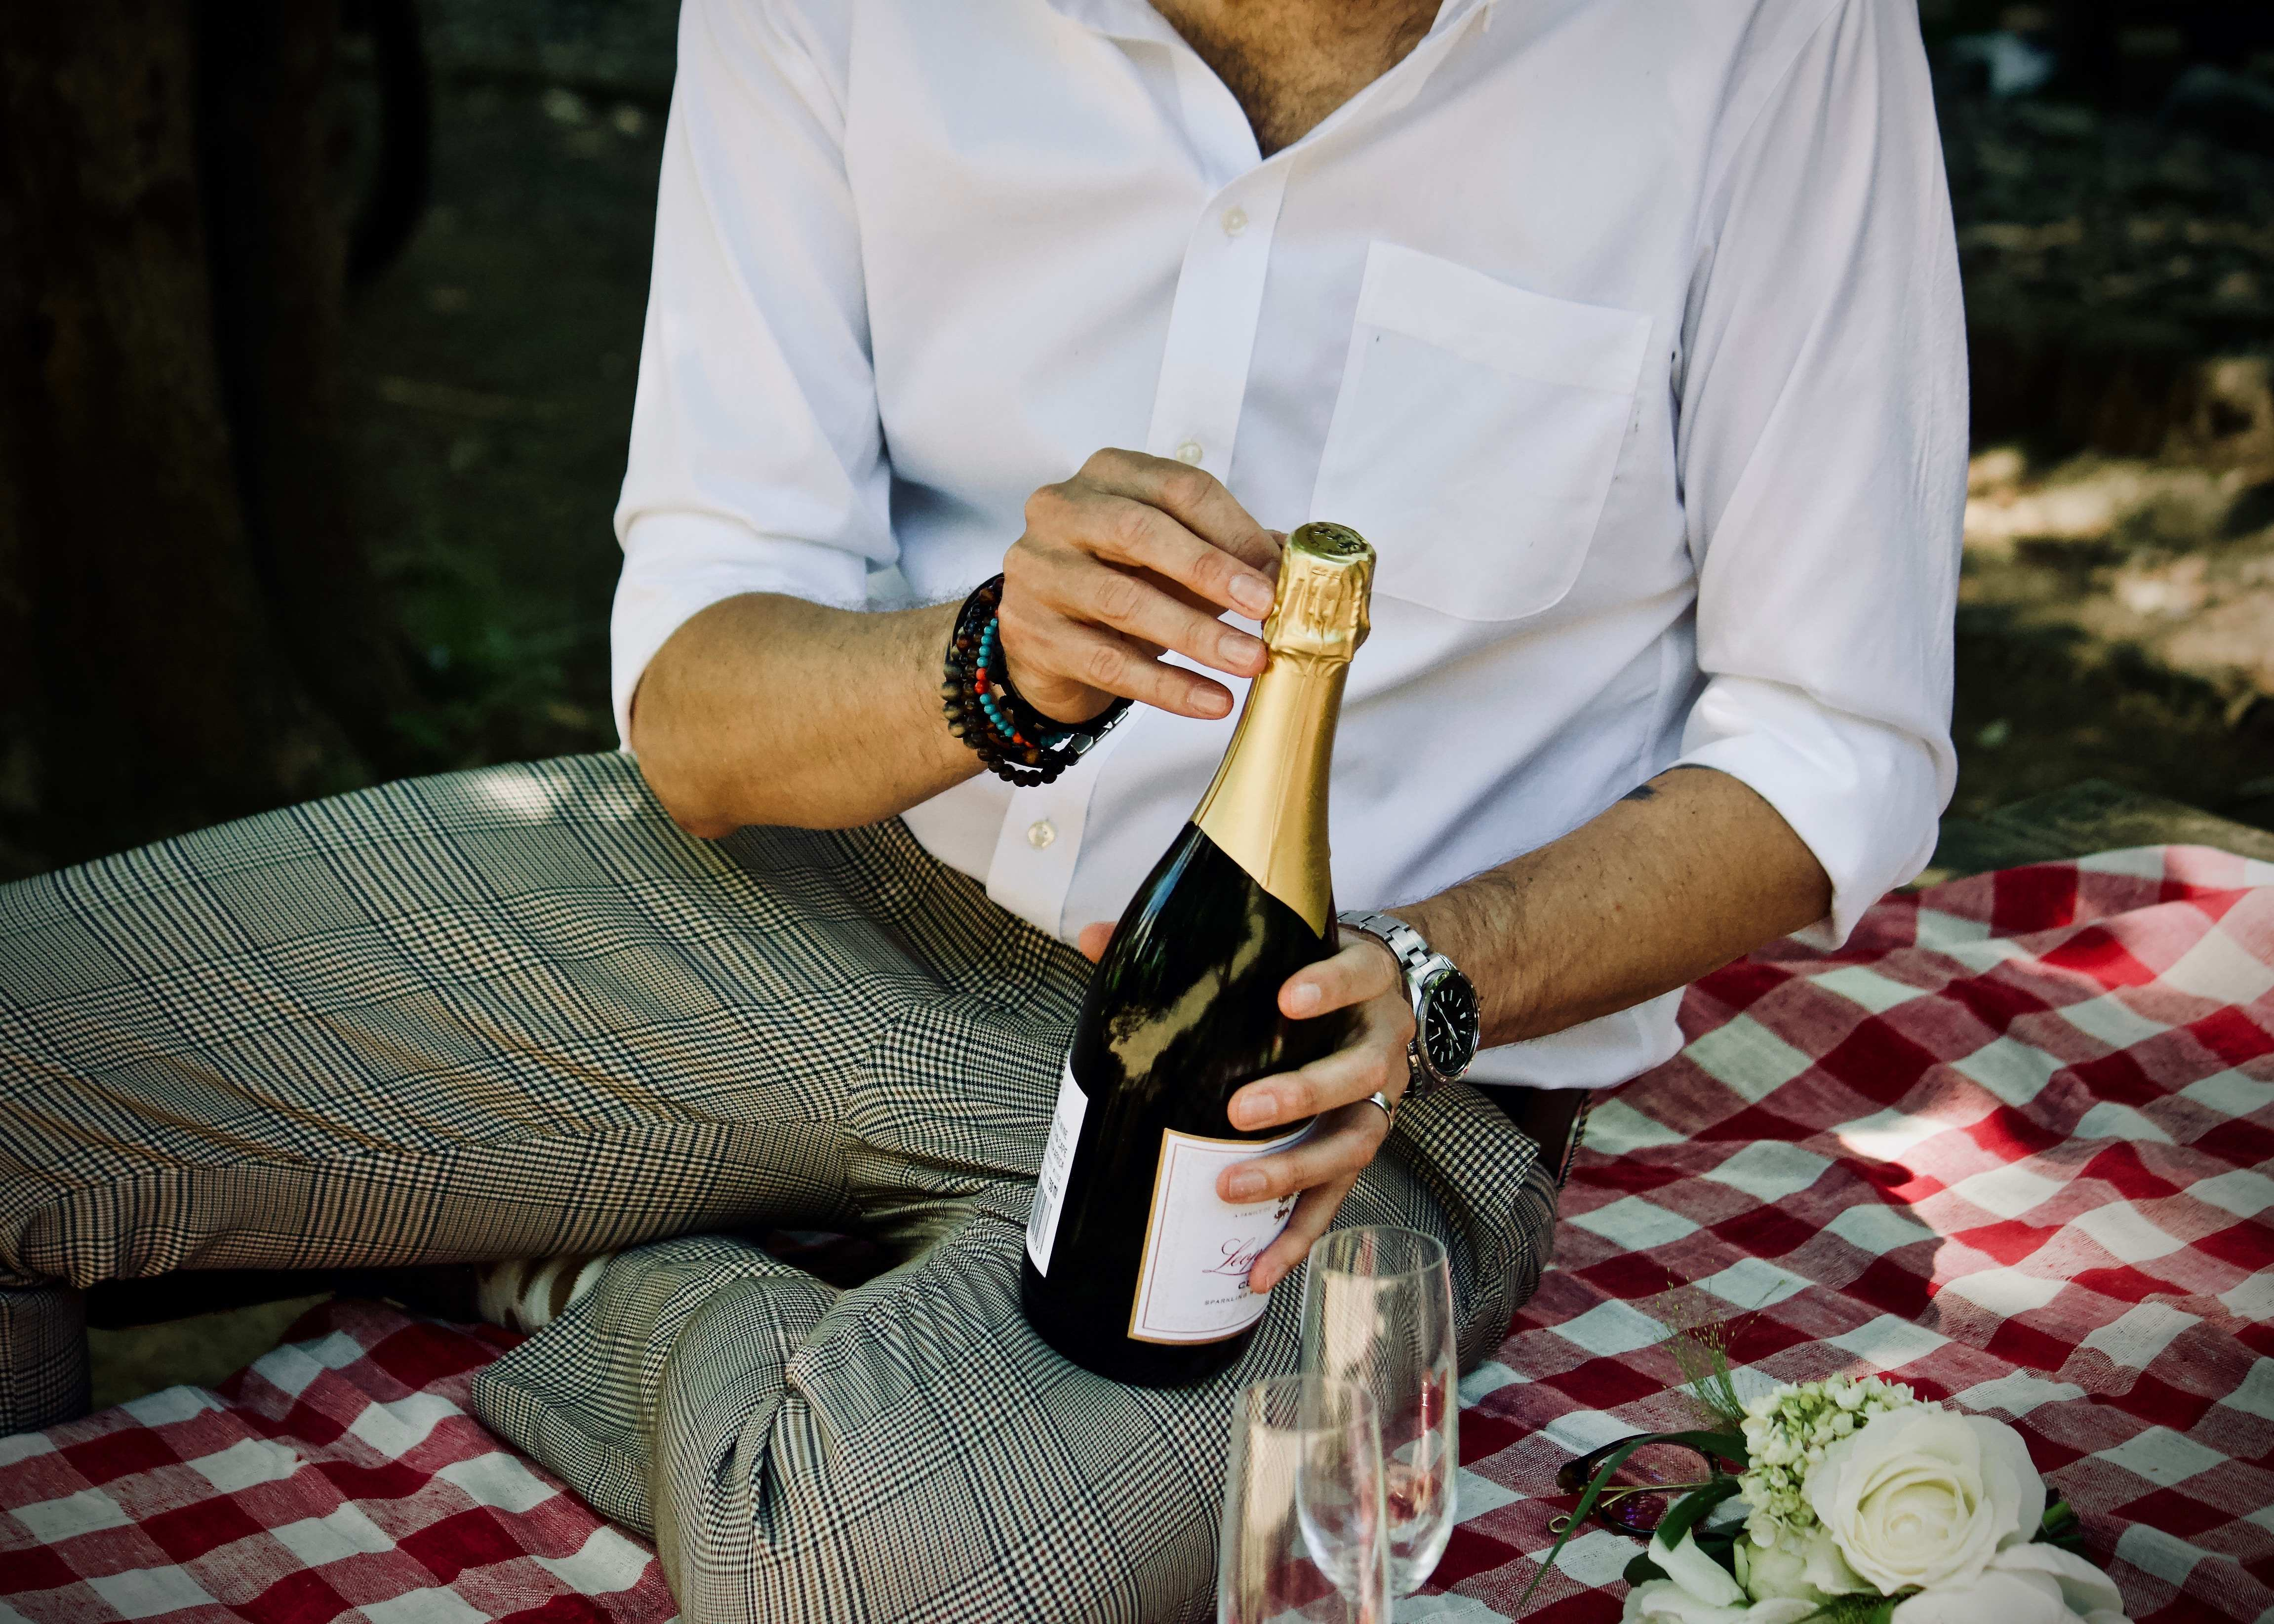 man opening champagne picnic date relationship